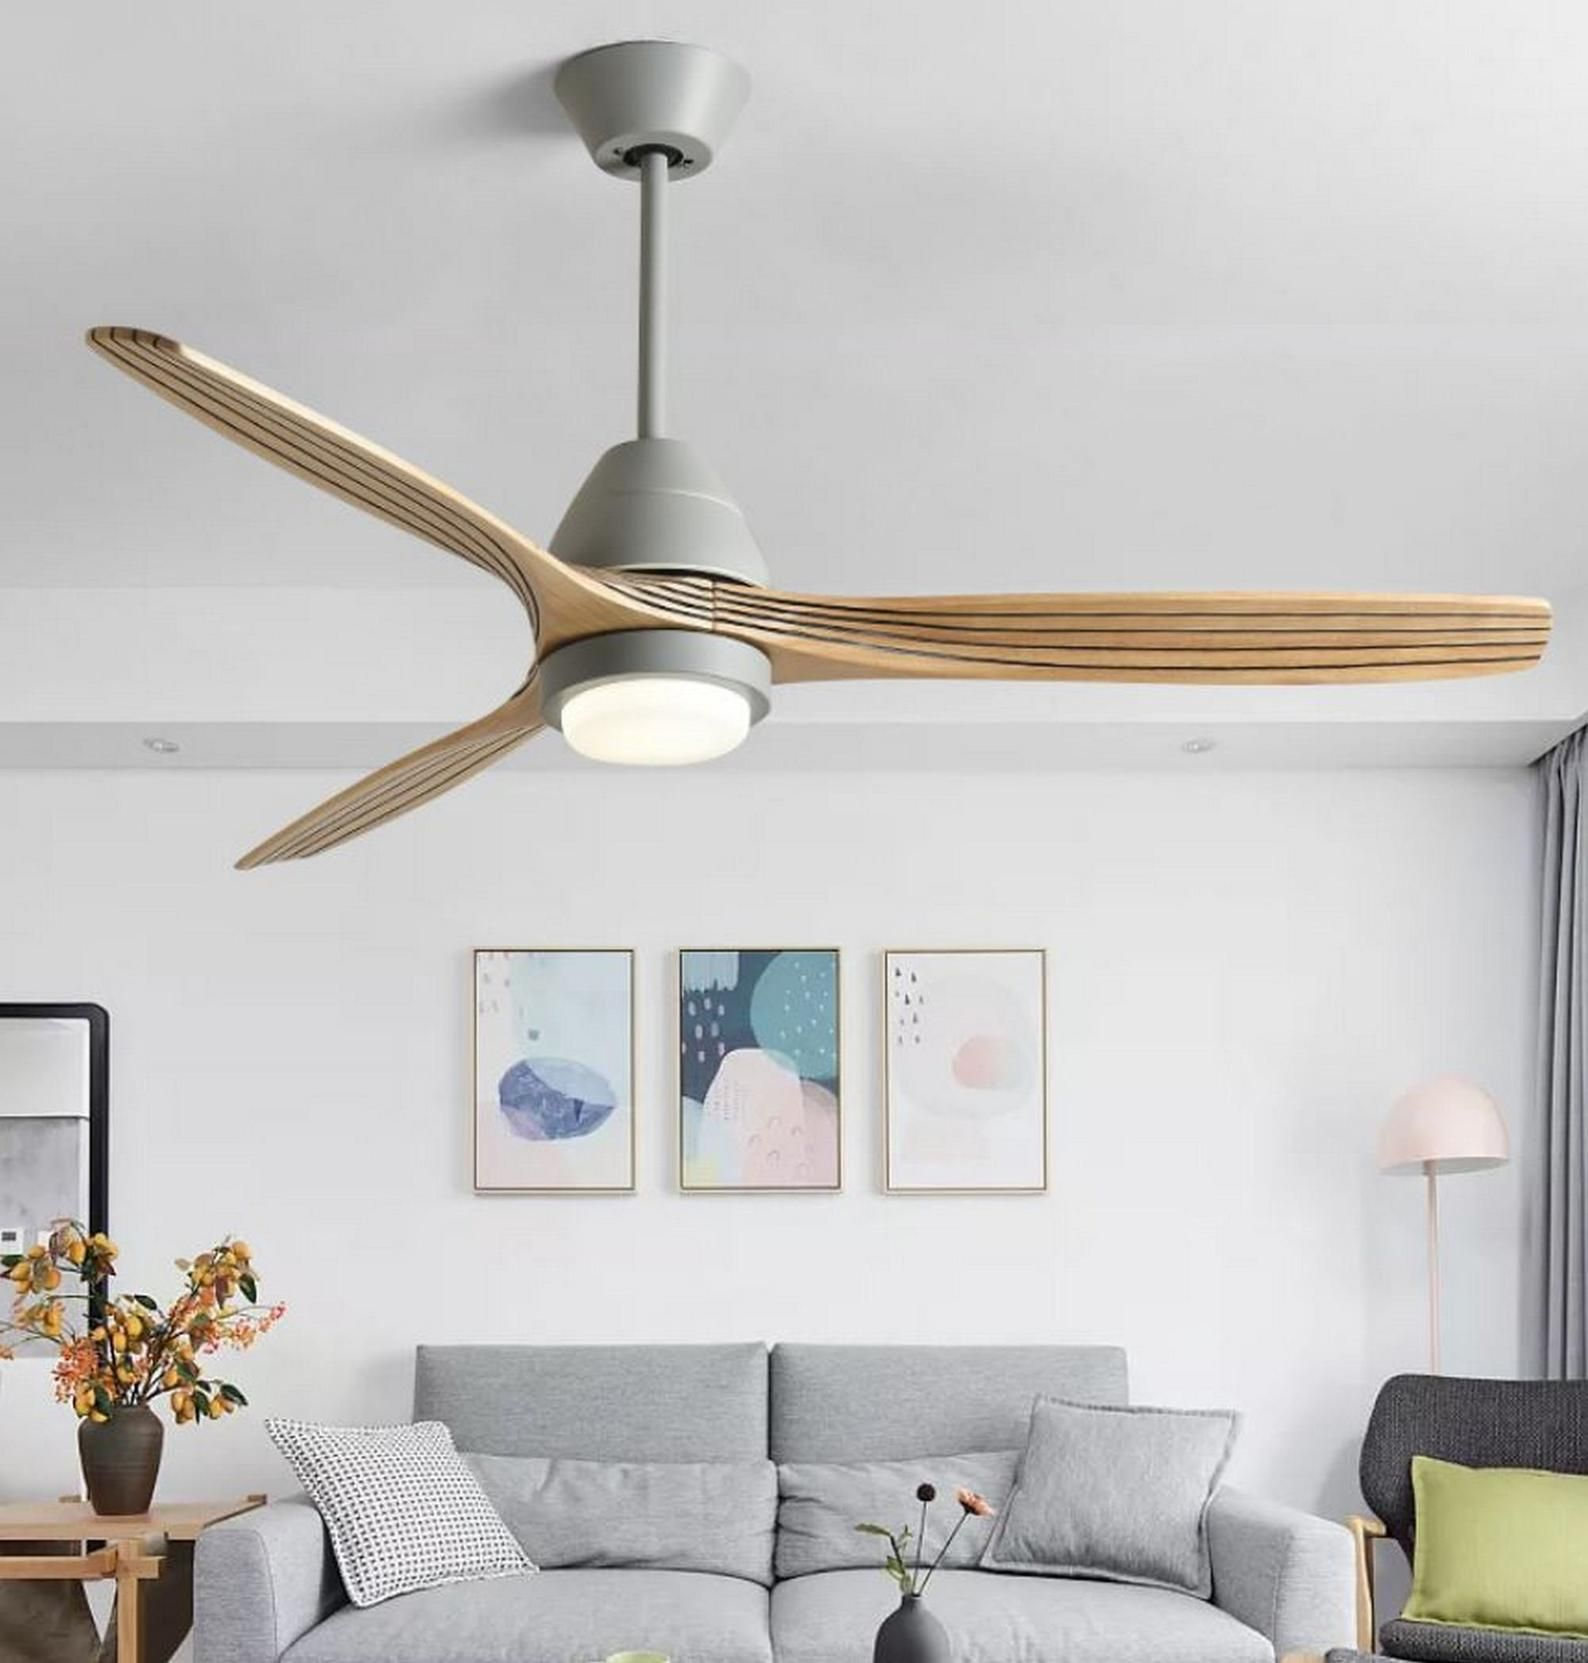 46+ Bedroom fan with led light formasi cpns